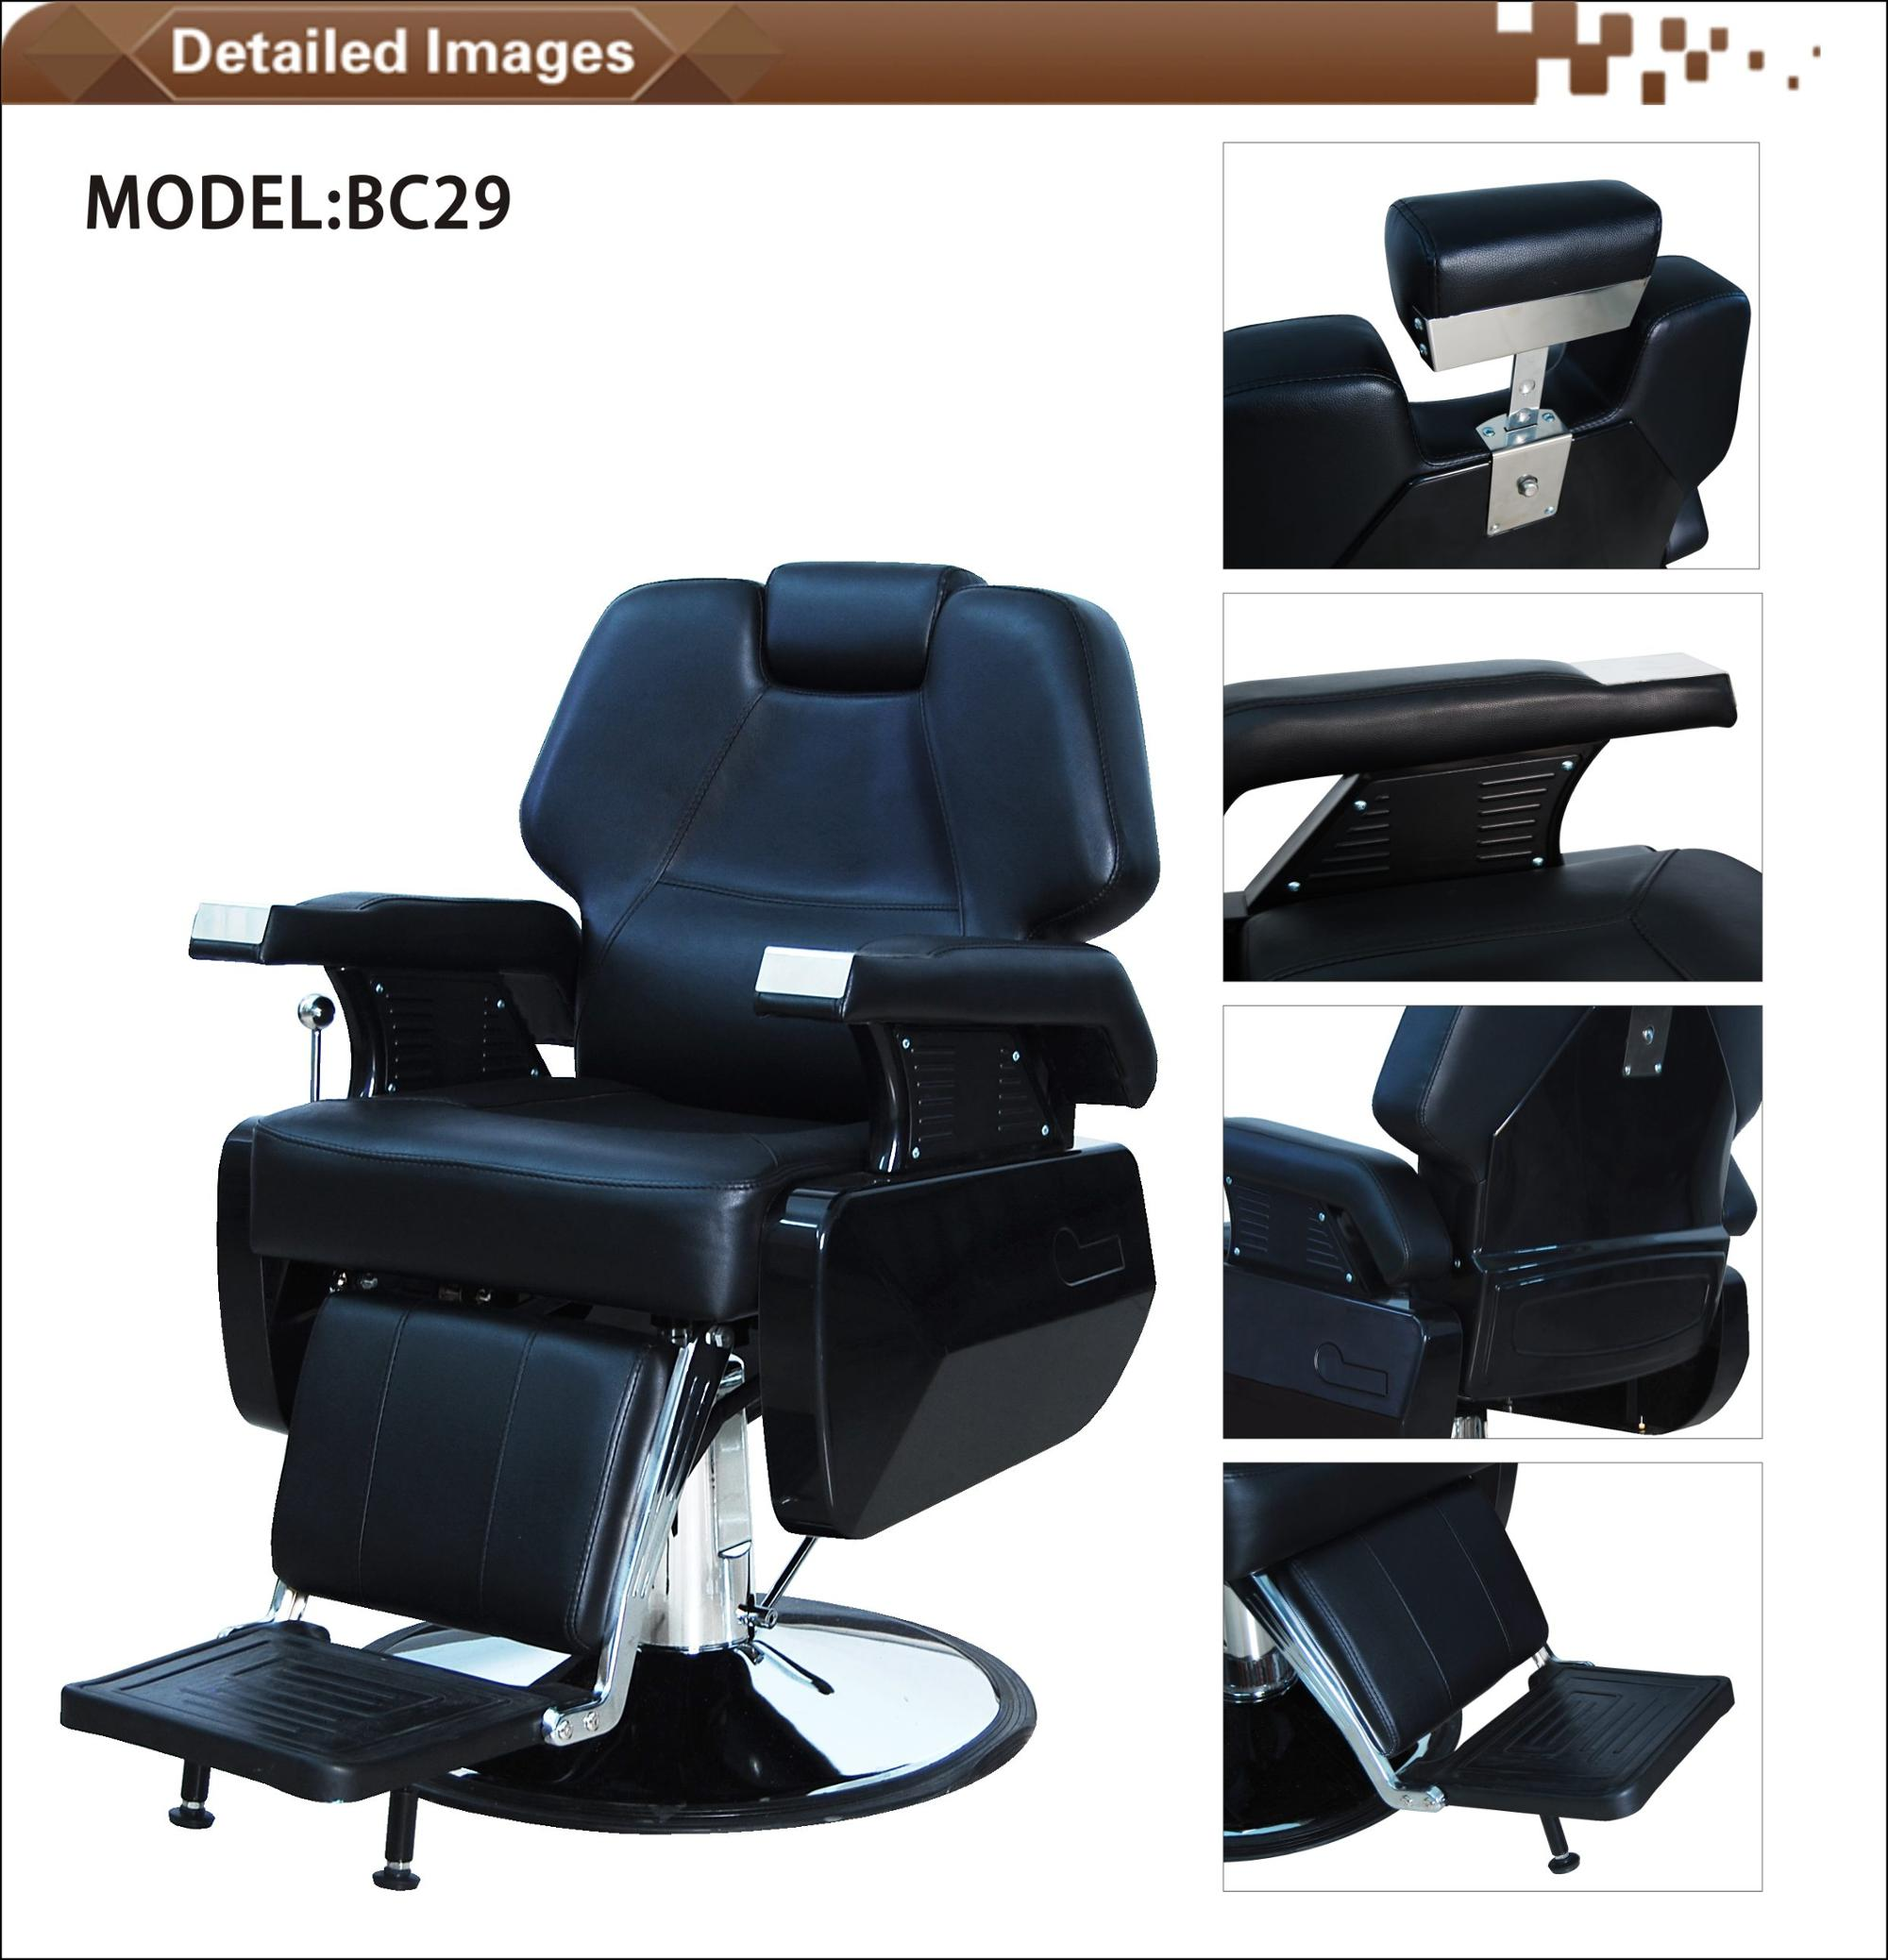 Awe Inspiring Heavy Duty Salon Barber Chair Classic Black Barber Chairs Used Barber Chairs For Sale Buy Heavy Duty Salon Barber Chair Classic Black Barber Gmtry Best Dining Table And Chair Ideas Images Gmtryco